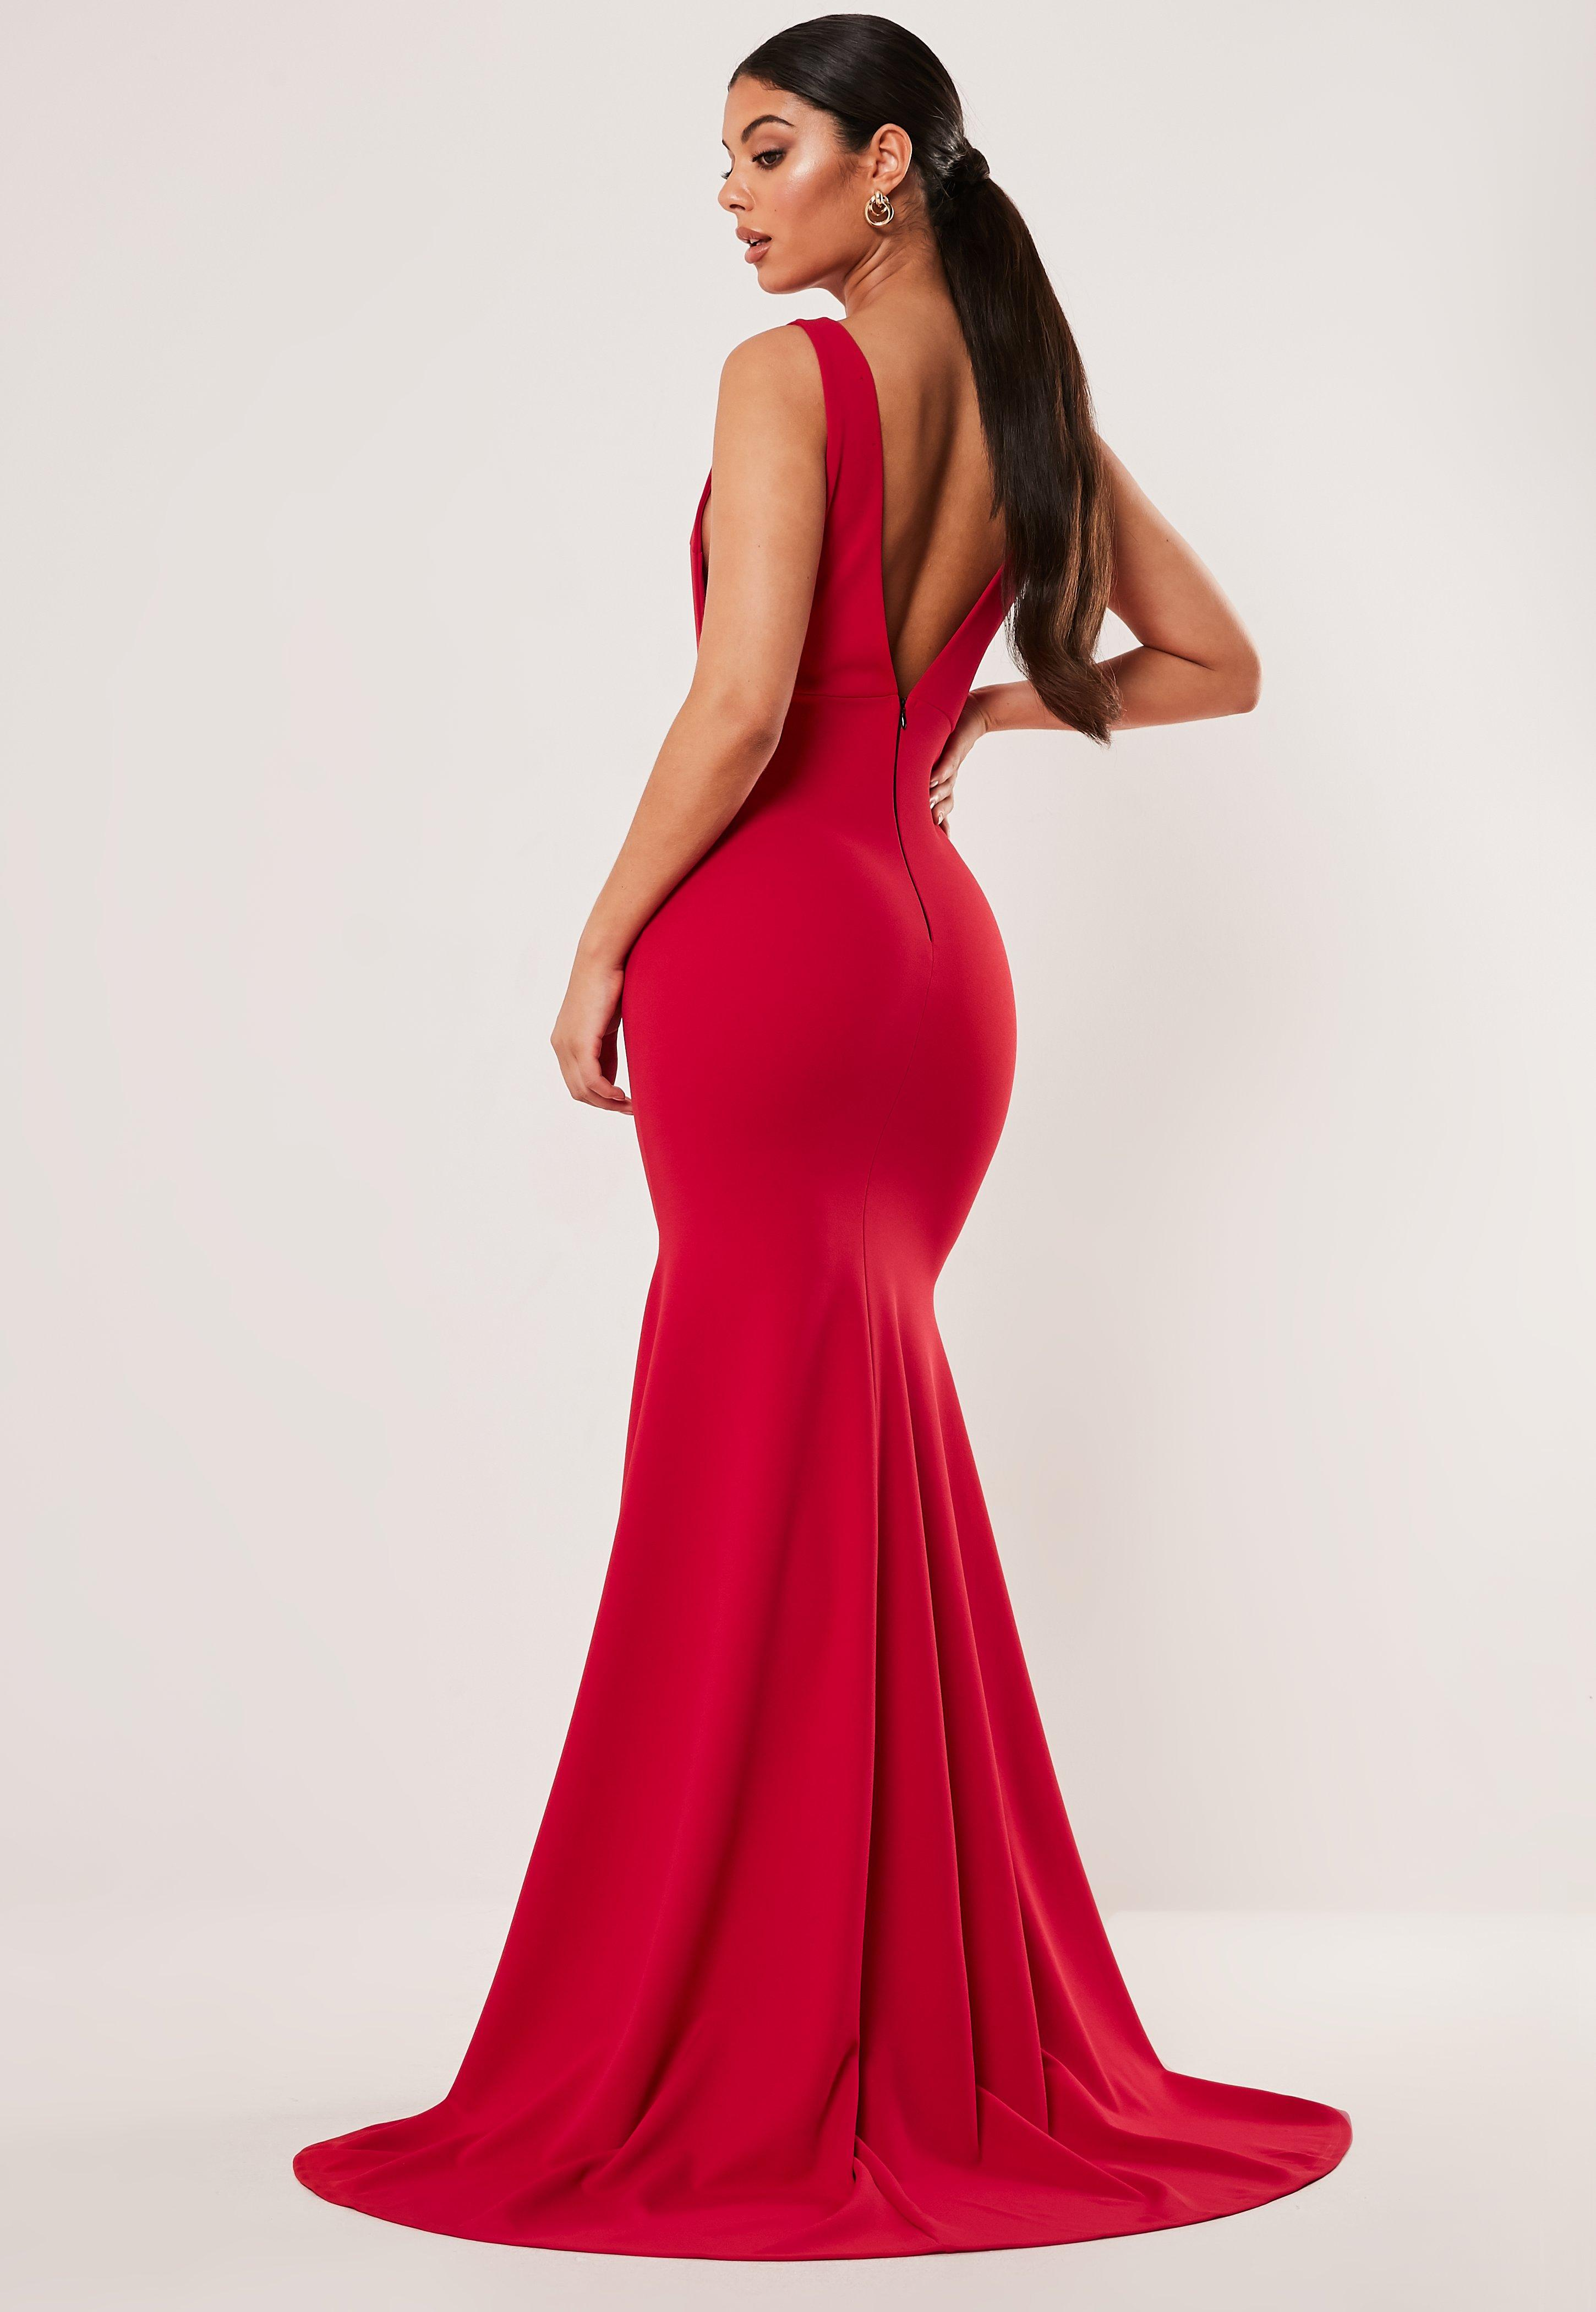 ab140a49f458 Evening Dresses | Black Tie & Ball Gowns - Missguided Ireland